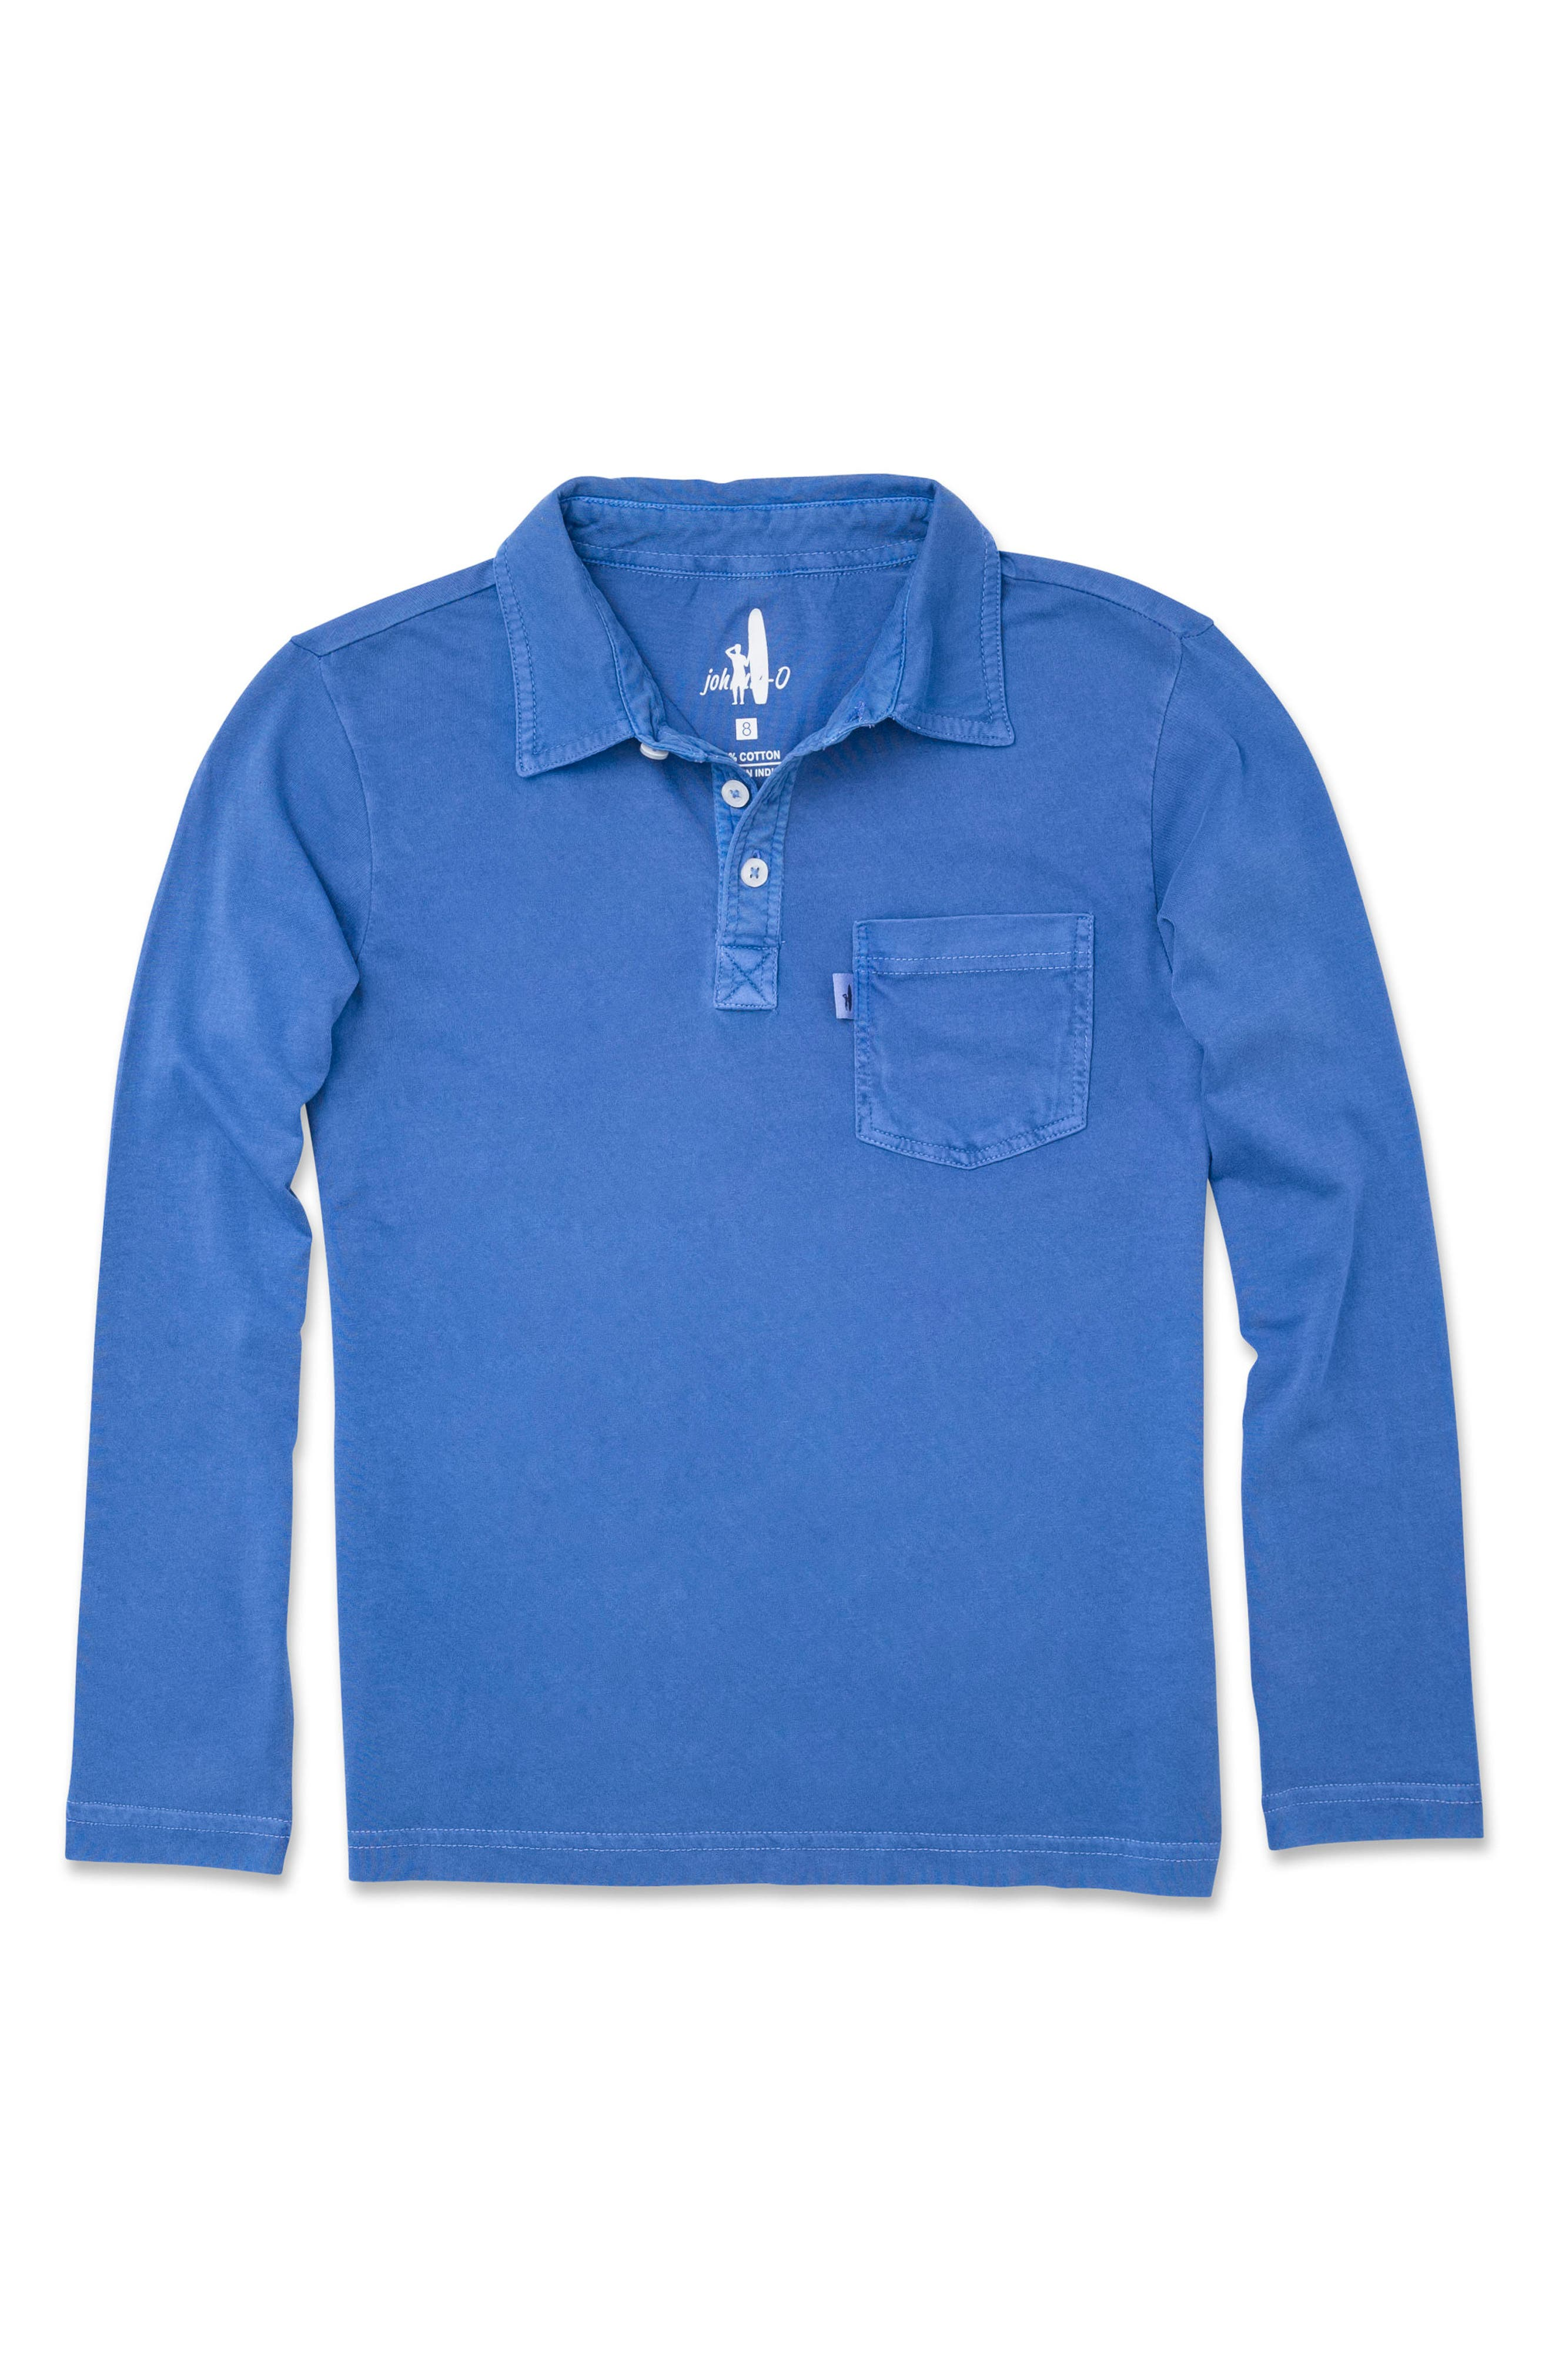 Alternate Image 1 Selected - johnnie-o Carbon Long Sleeve Pocket Polo (Little Boys)